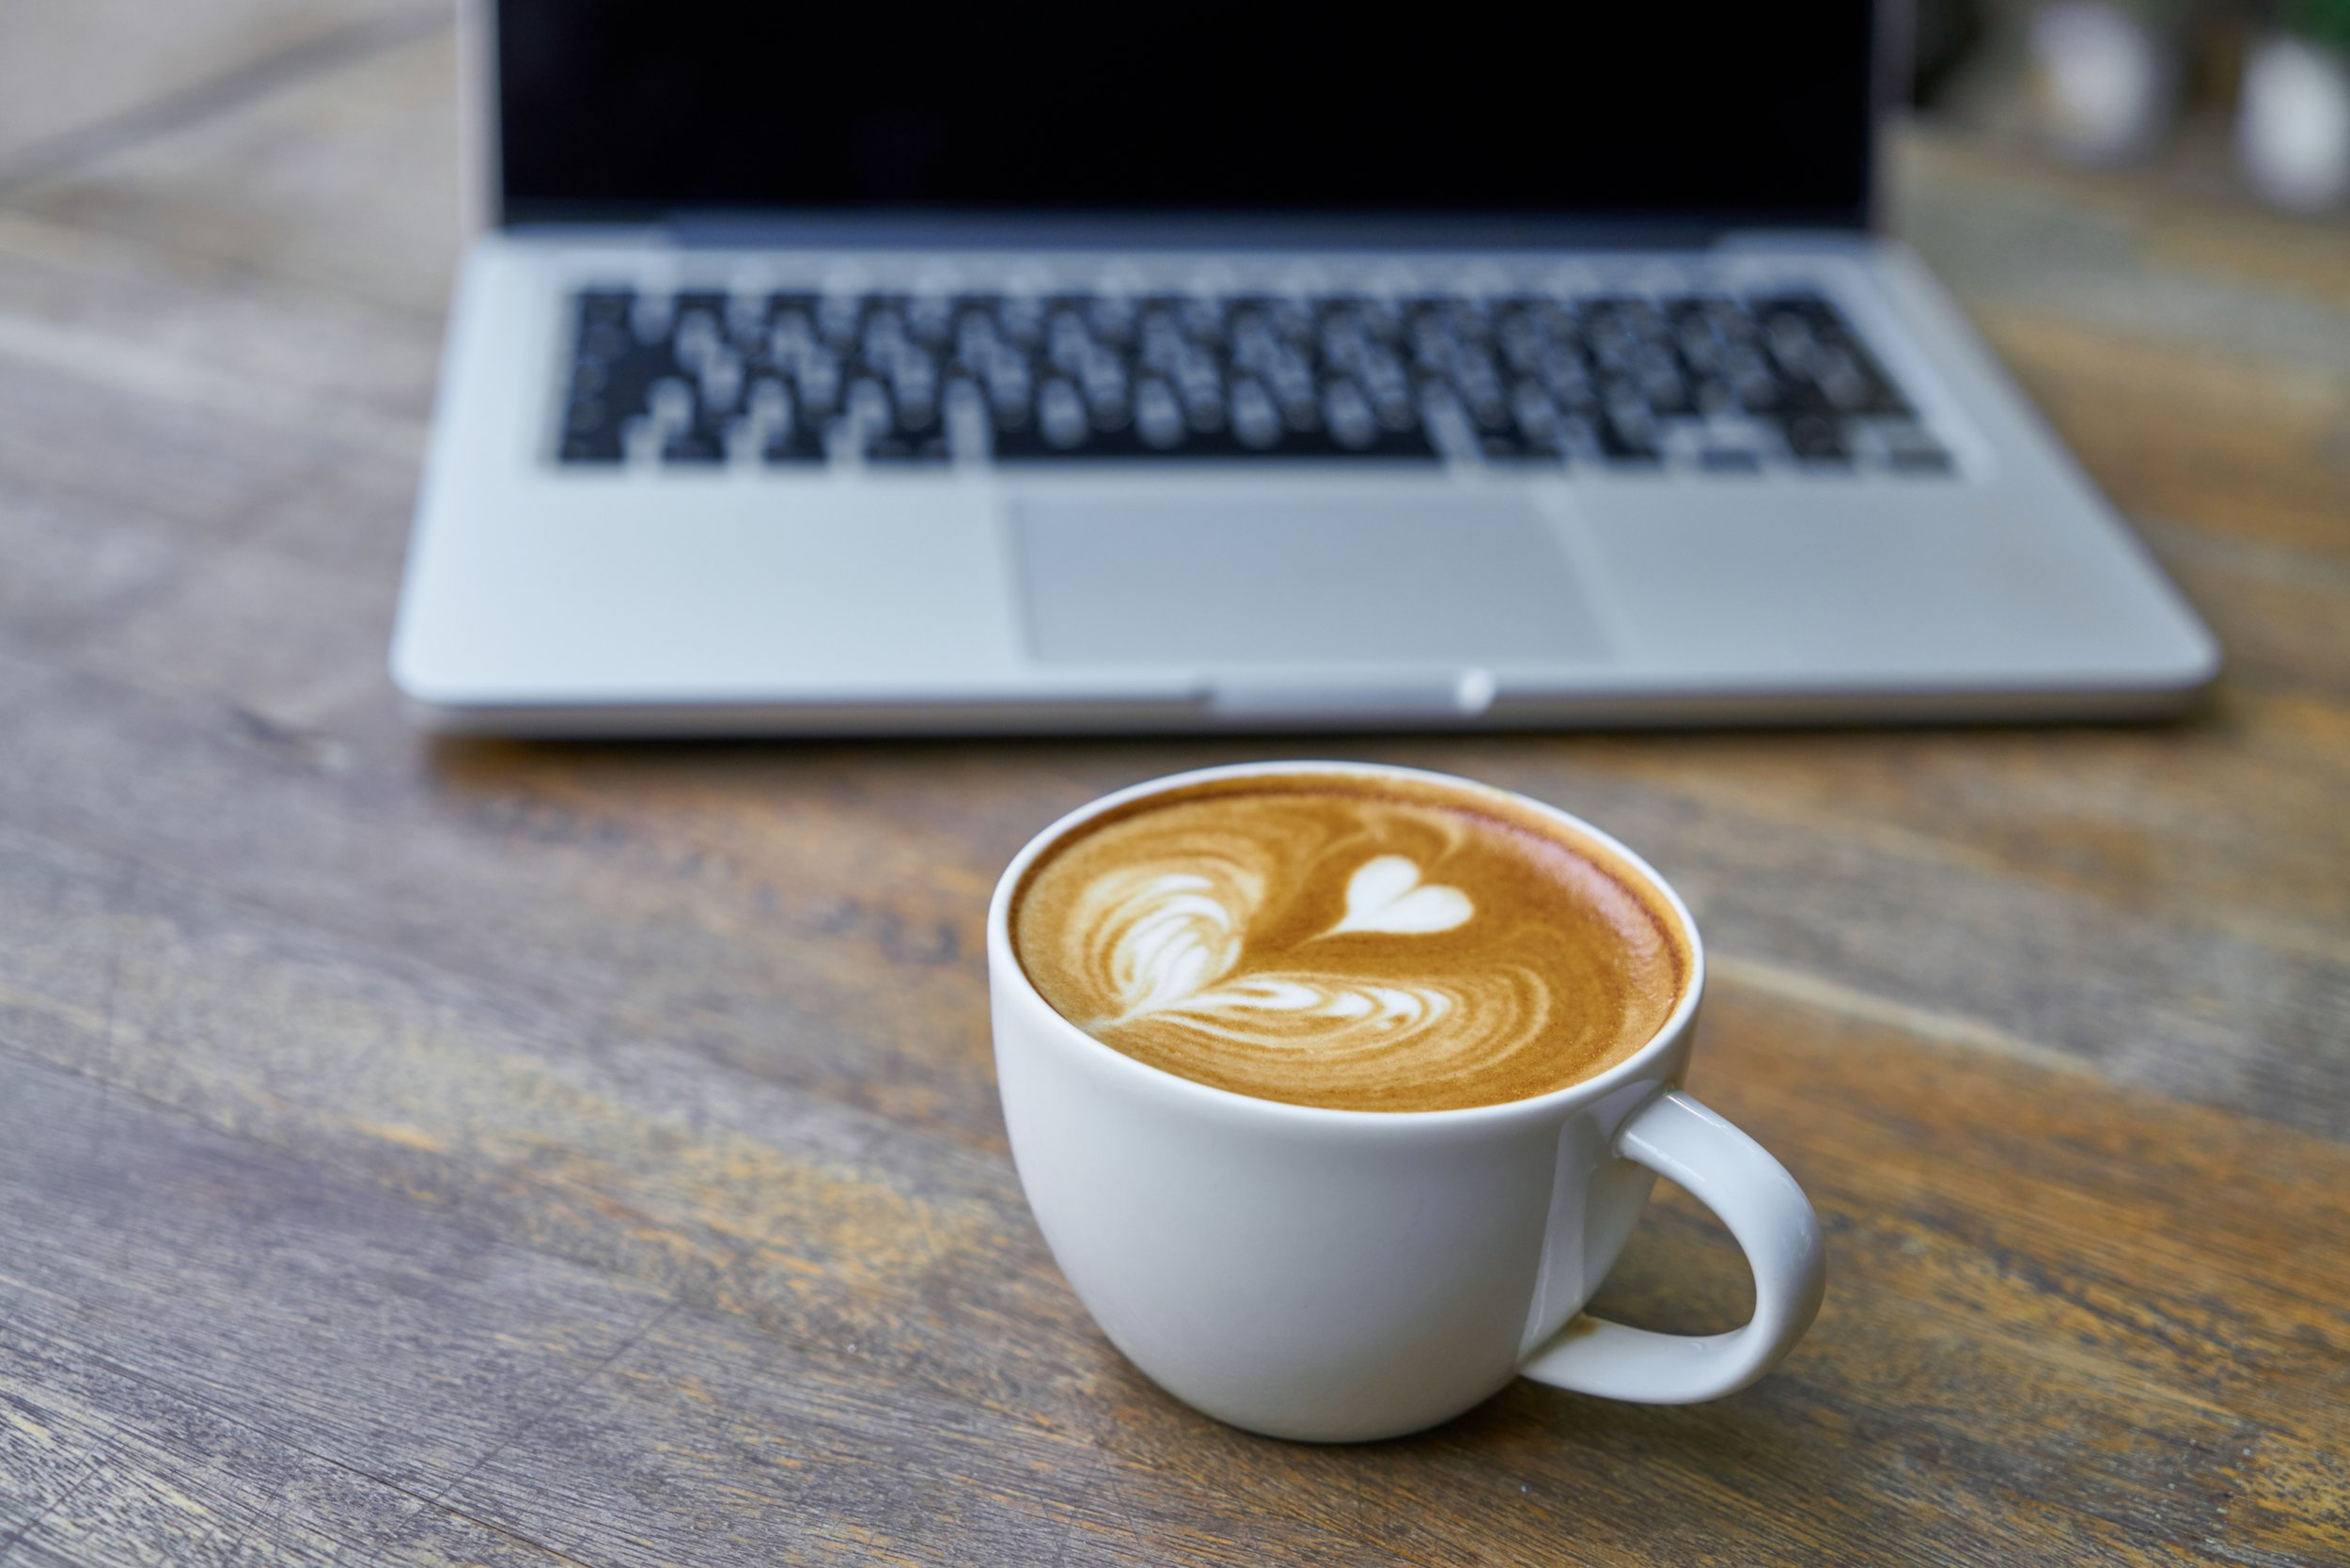 Where do you enjoy your working coffee?